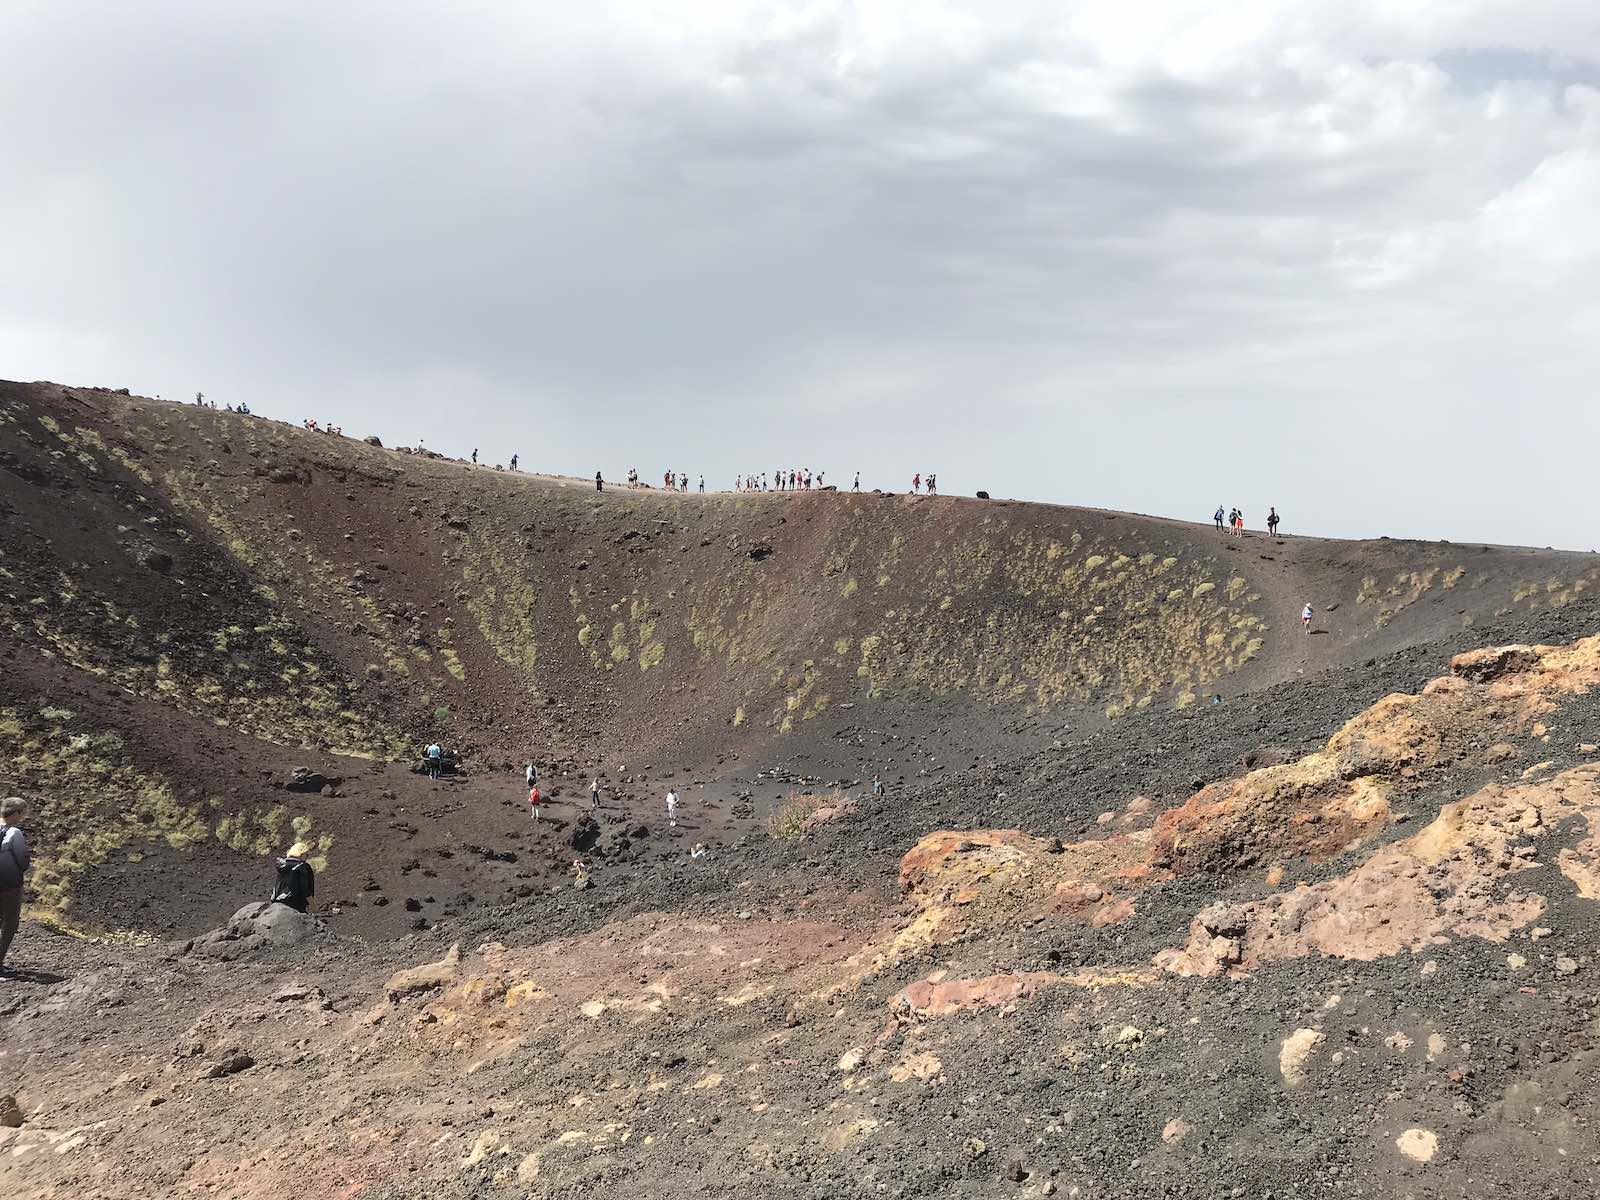 Exploring the lower crater at Silvestri